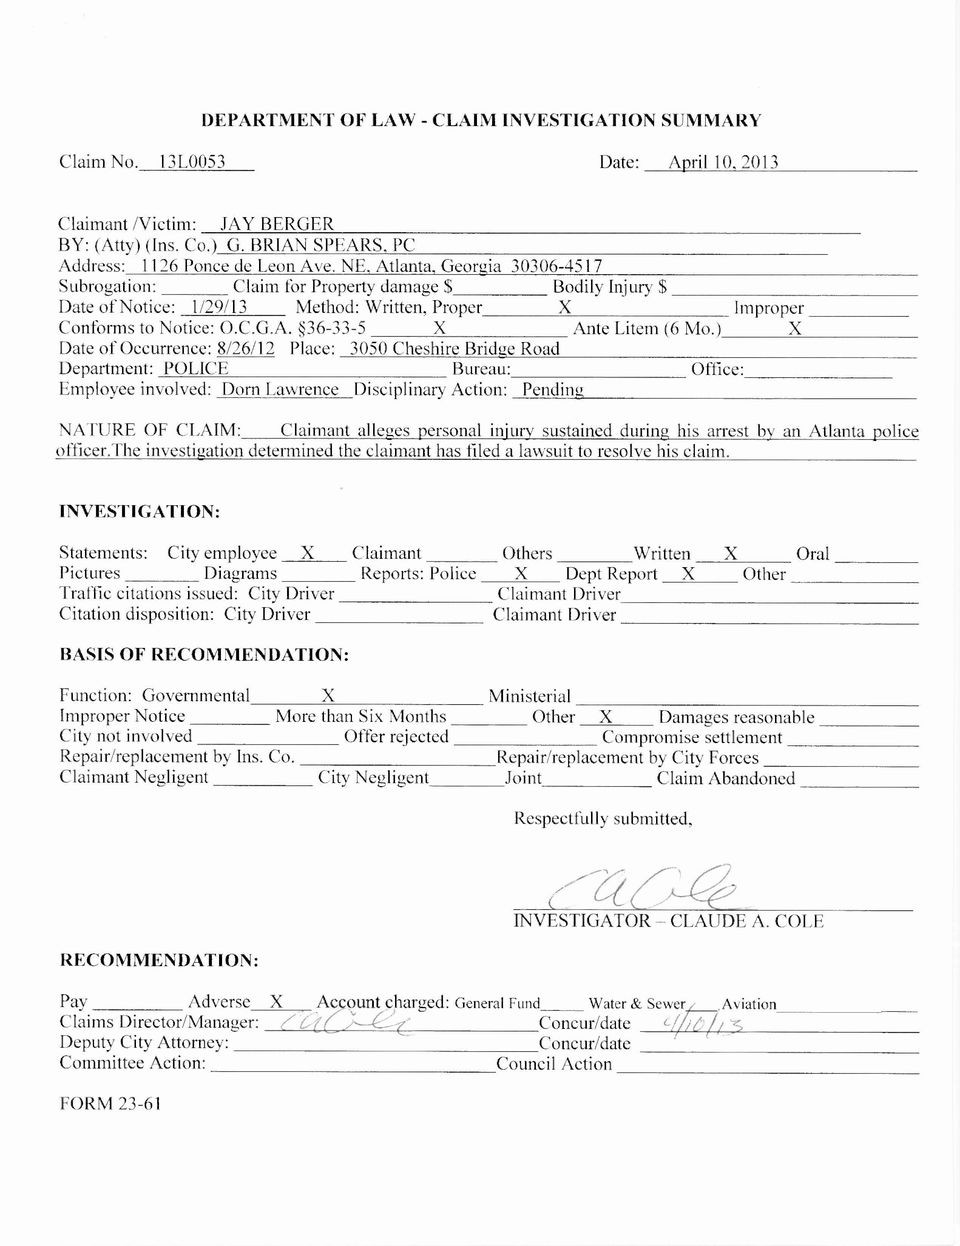 ) X Date of Occurrence: 8/26/12 Place: 3050 Cheshire Bridge Road Department: POLICE Bureau: Office: Employee involved: Dorn Lawrence Disciplinary Action: Pending NATURE OF CLAIM: Claimant alleges